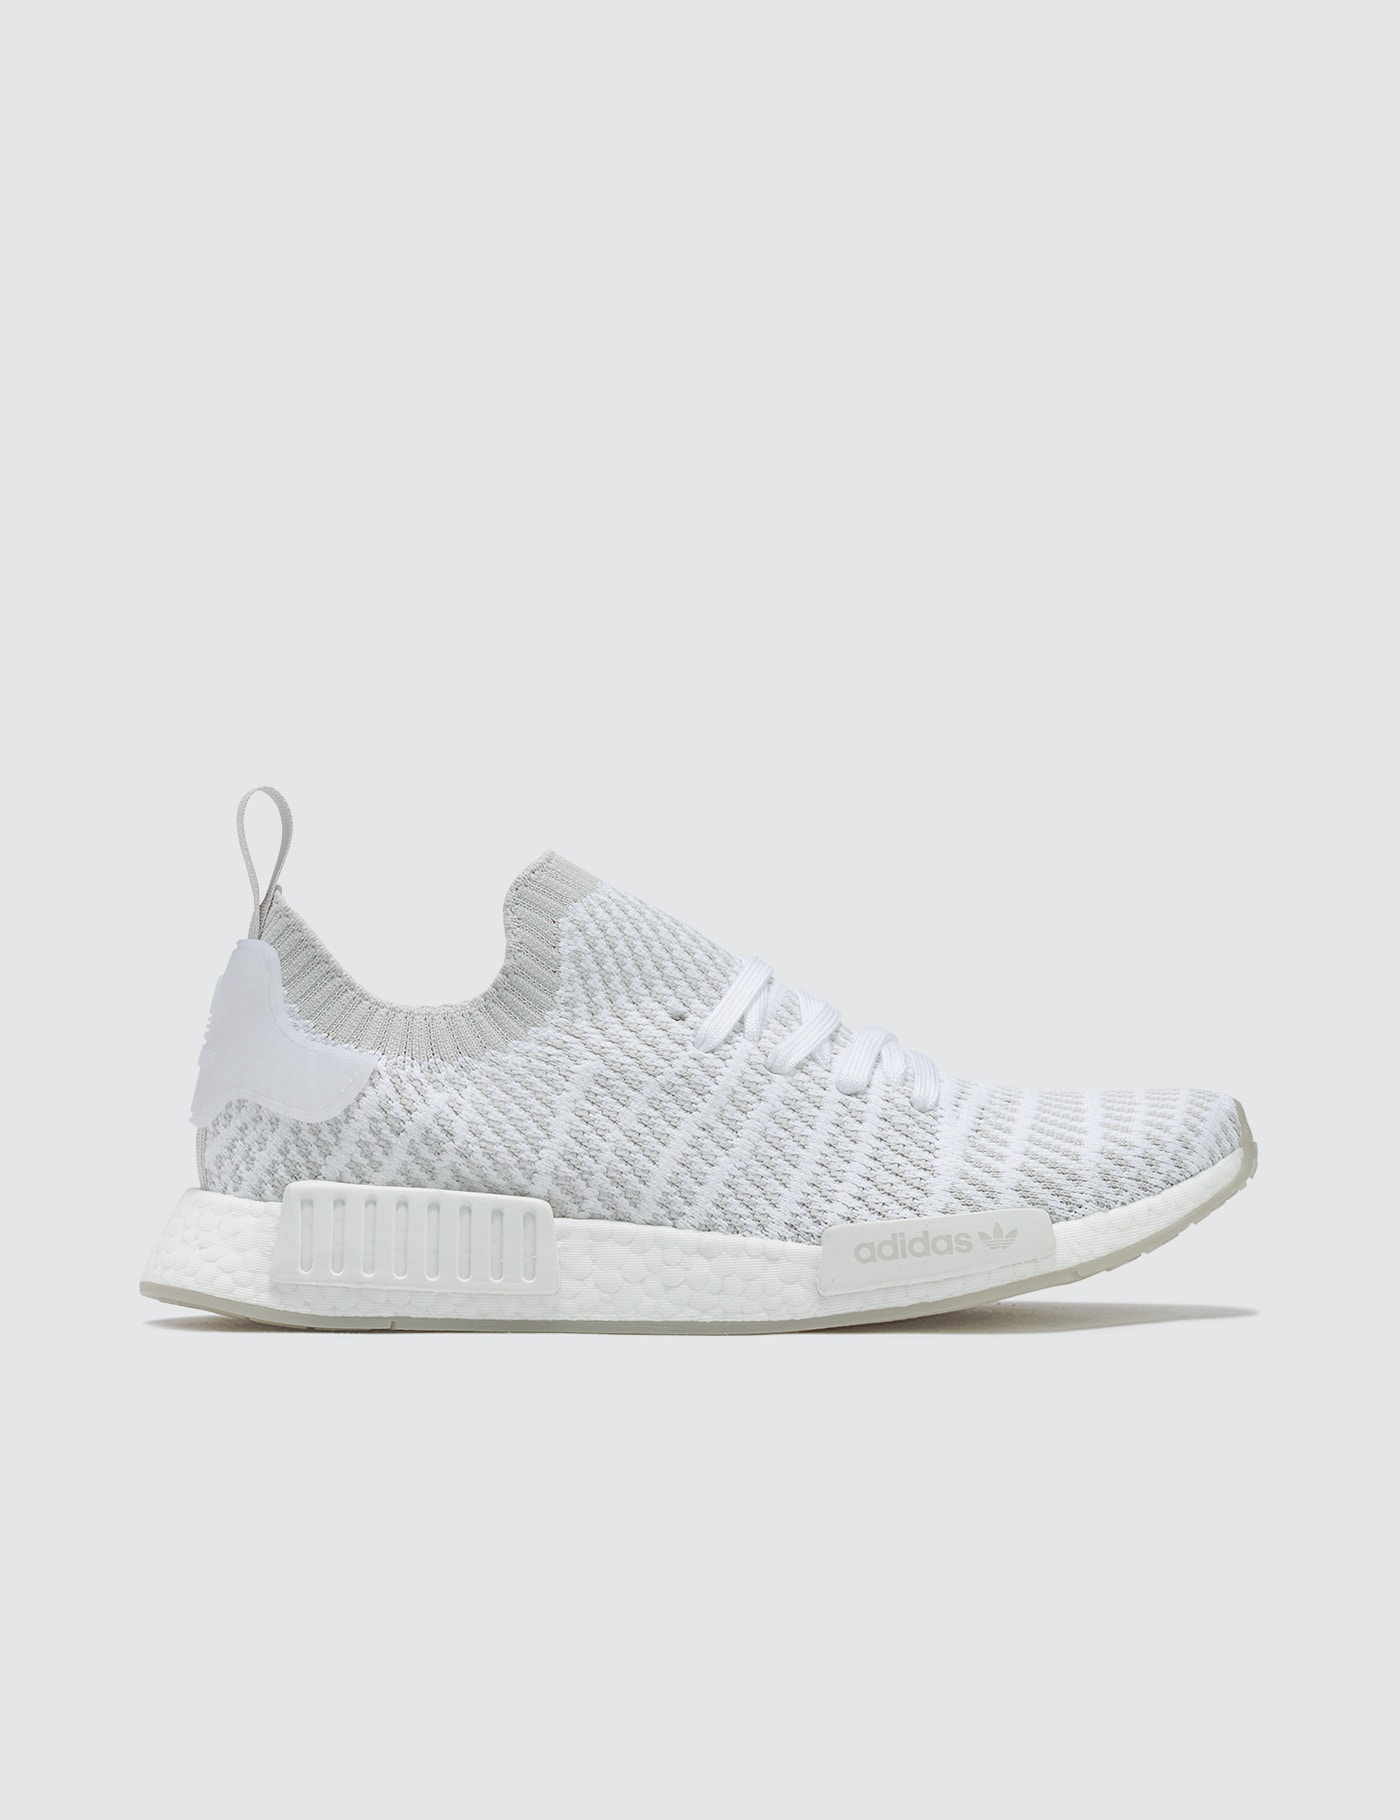 c6f0a96f6 Buy Original Adidas Originals NMD R1 Runner STLT Primeknit at ...